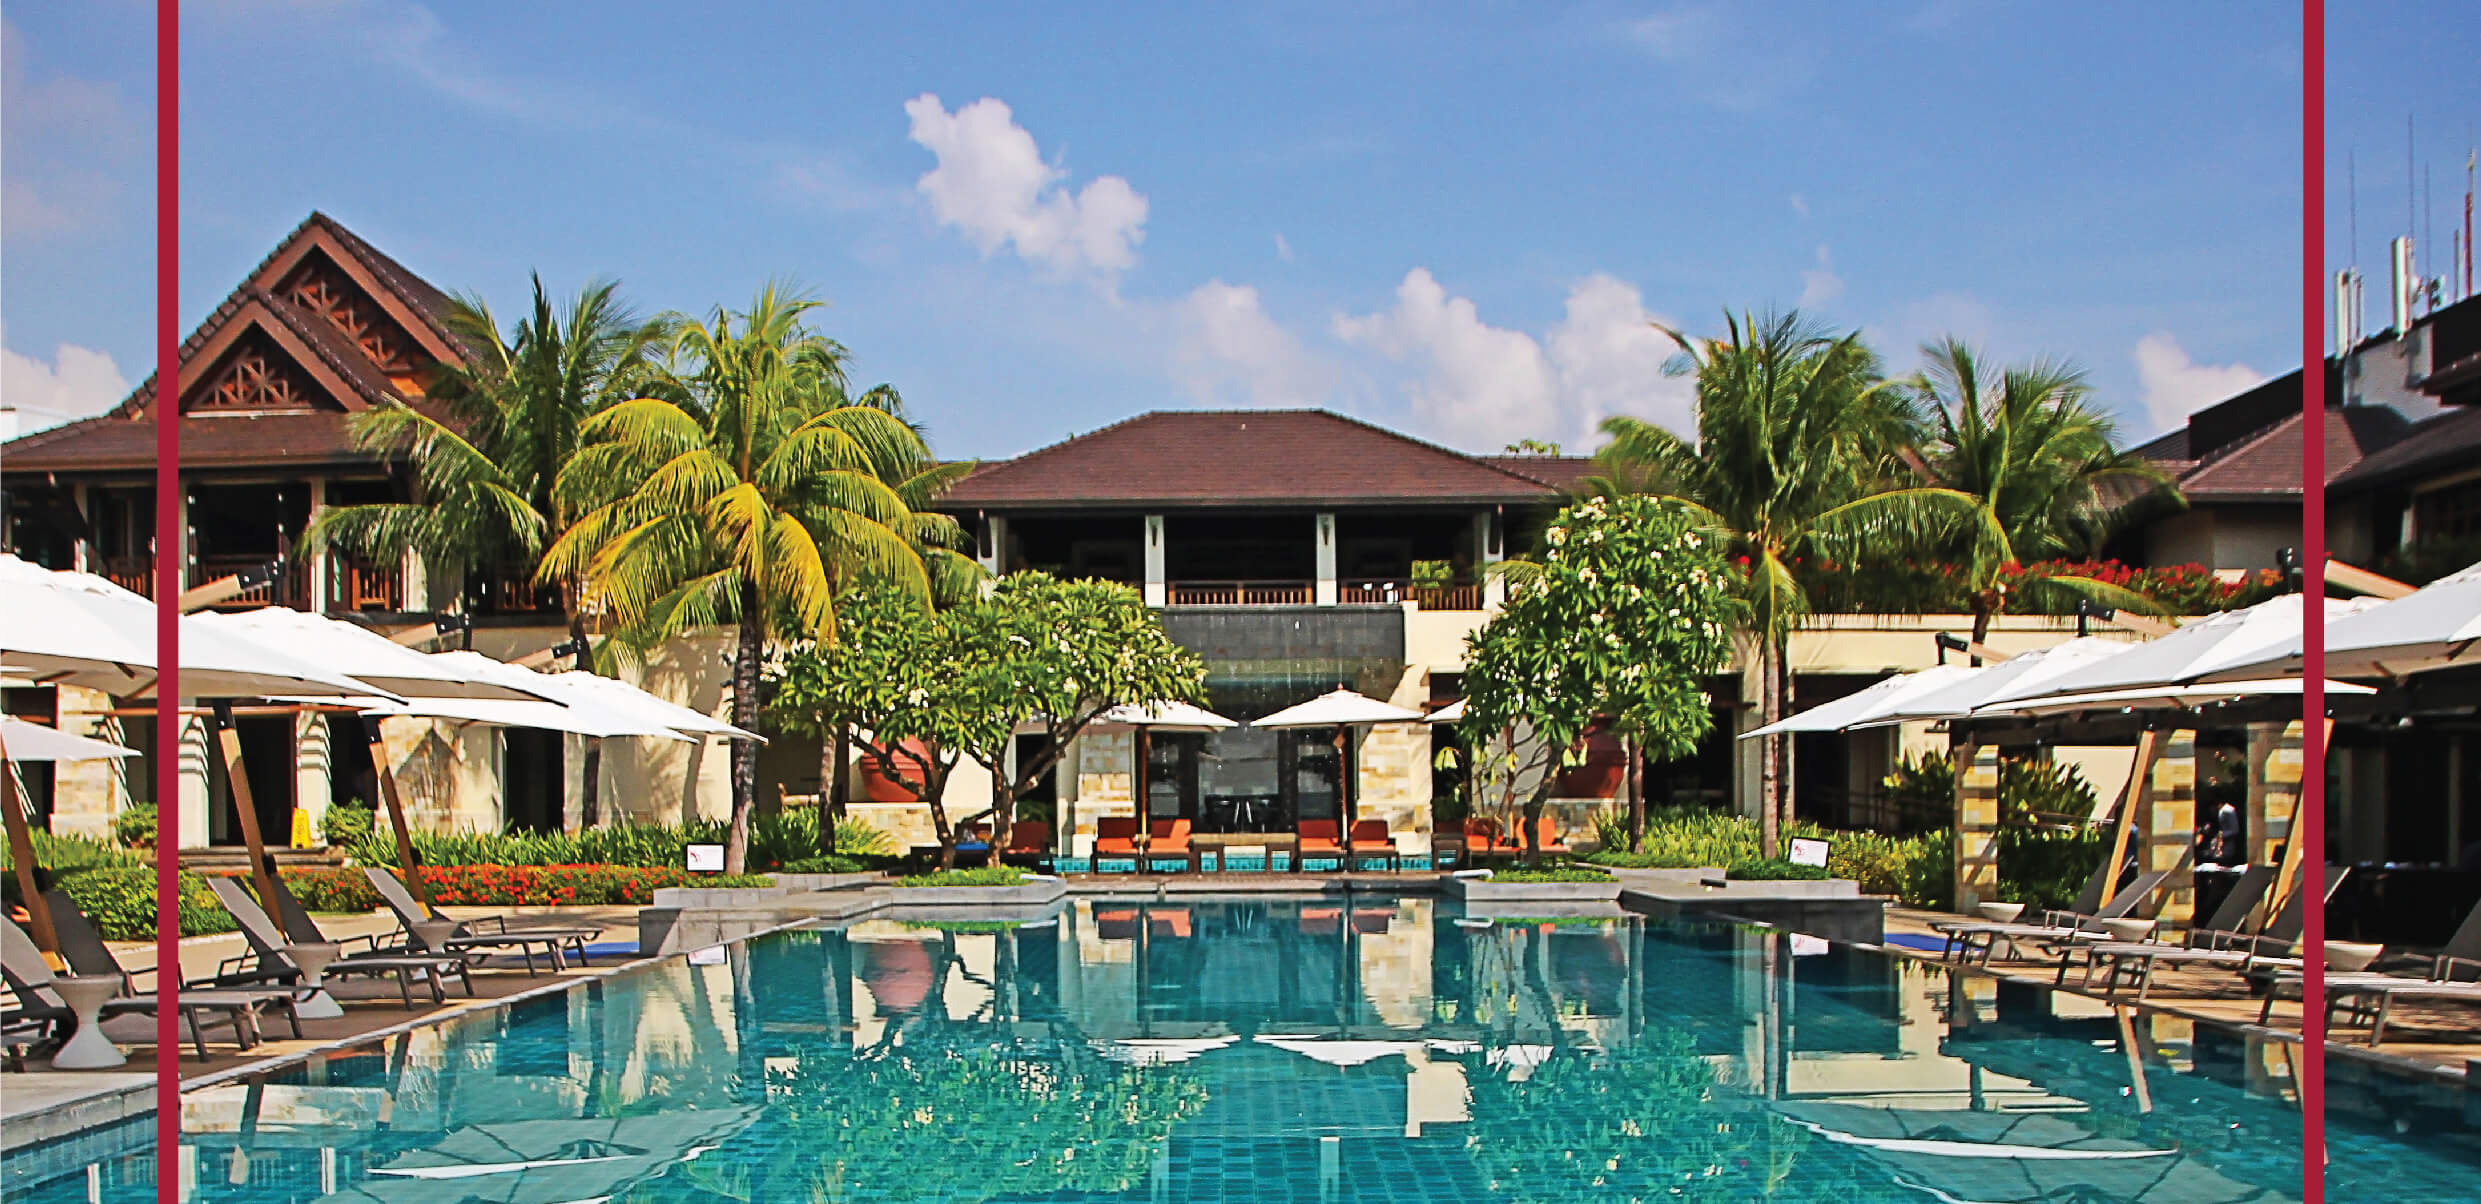 Crimson Resort & Spa Mactan offers discounts on rooms, activities, F&B, and spa services